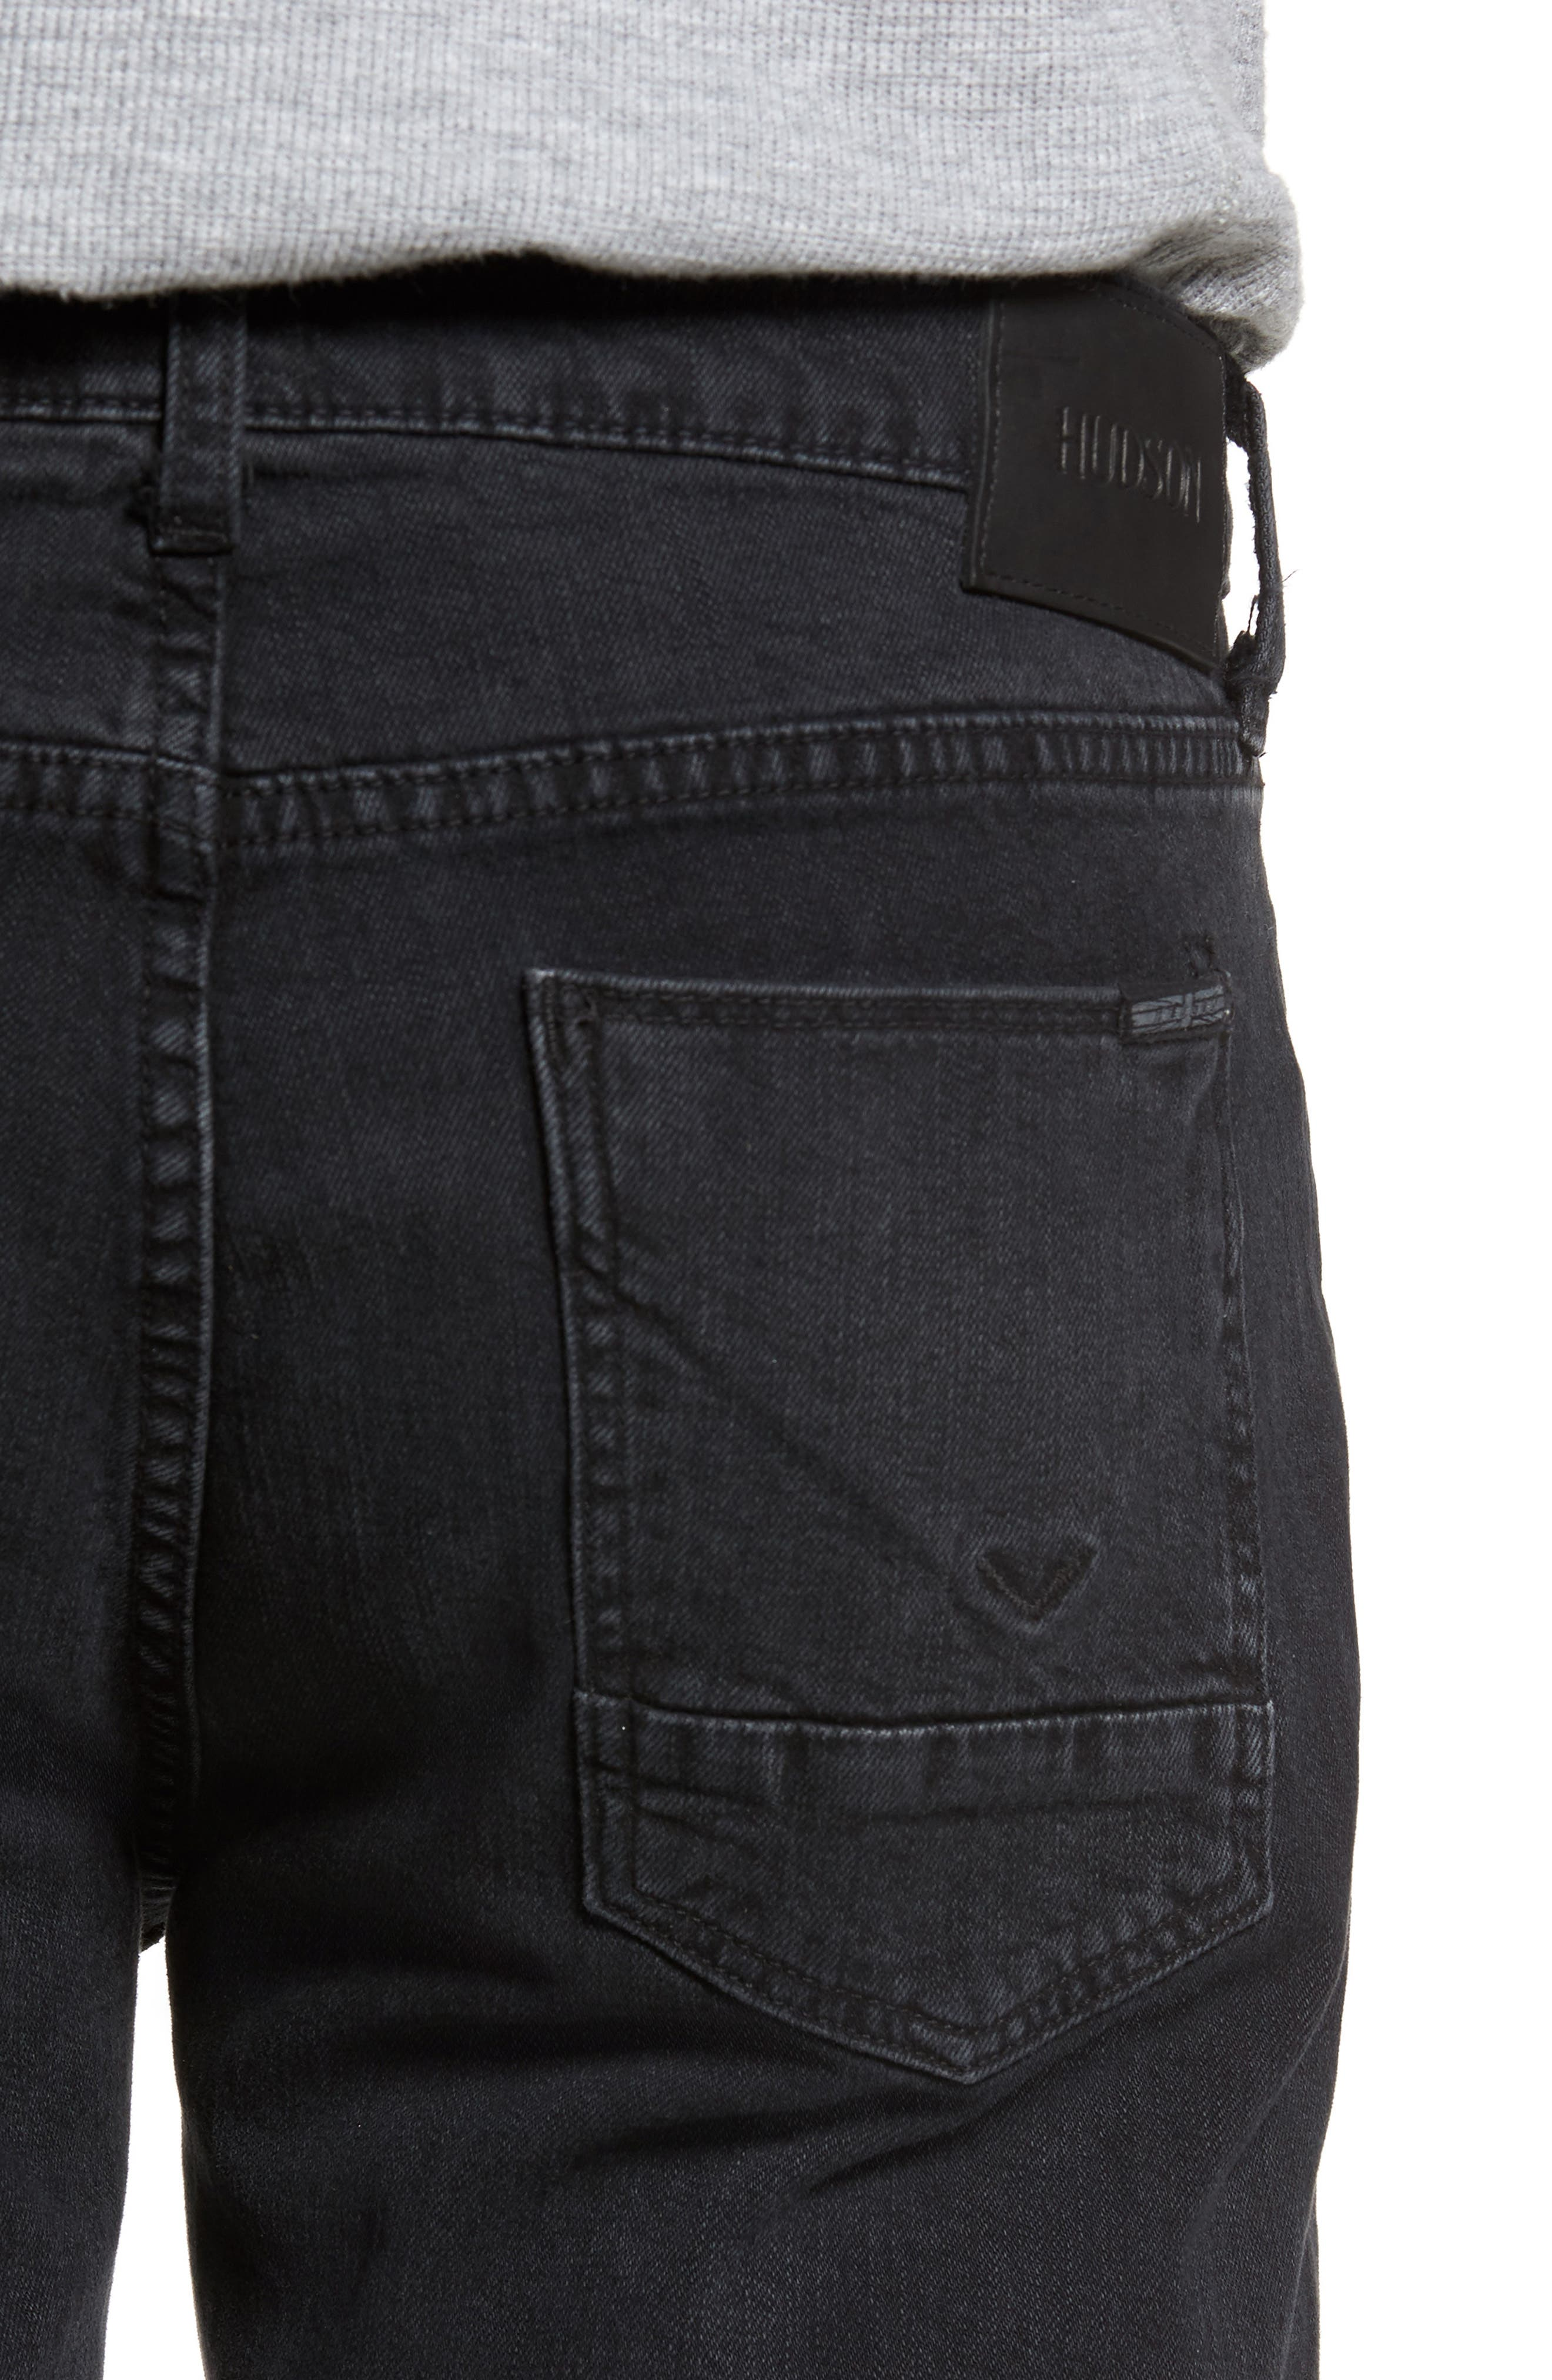 Byron Slim Straight Fit Jeans,                             Alternate thumbnail 4, color,